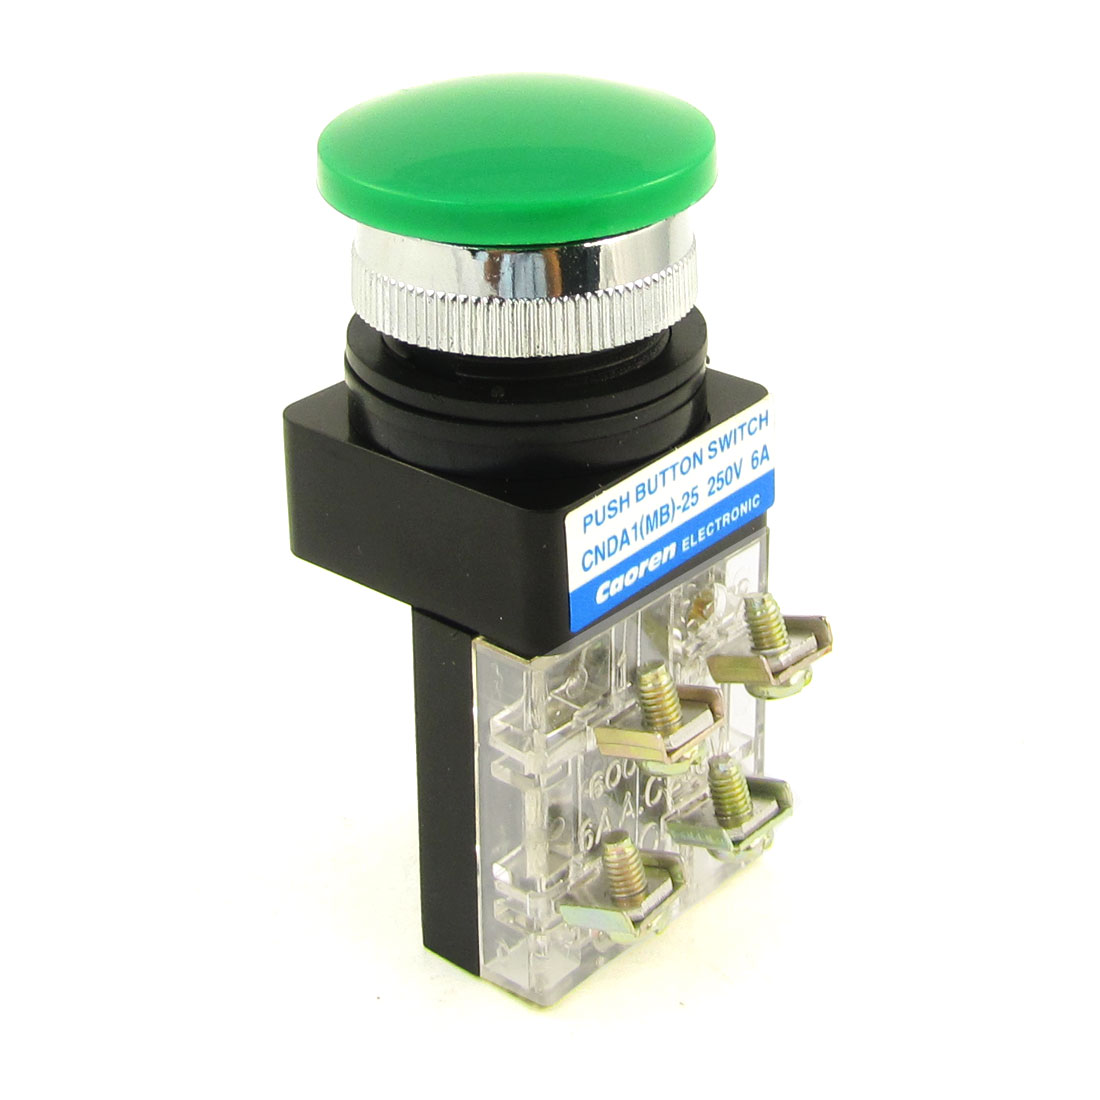 AC 250V 6A SPDT Panel Mounted Momentary Green Mushroom Push Button Switch